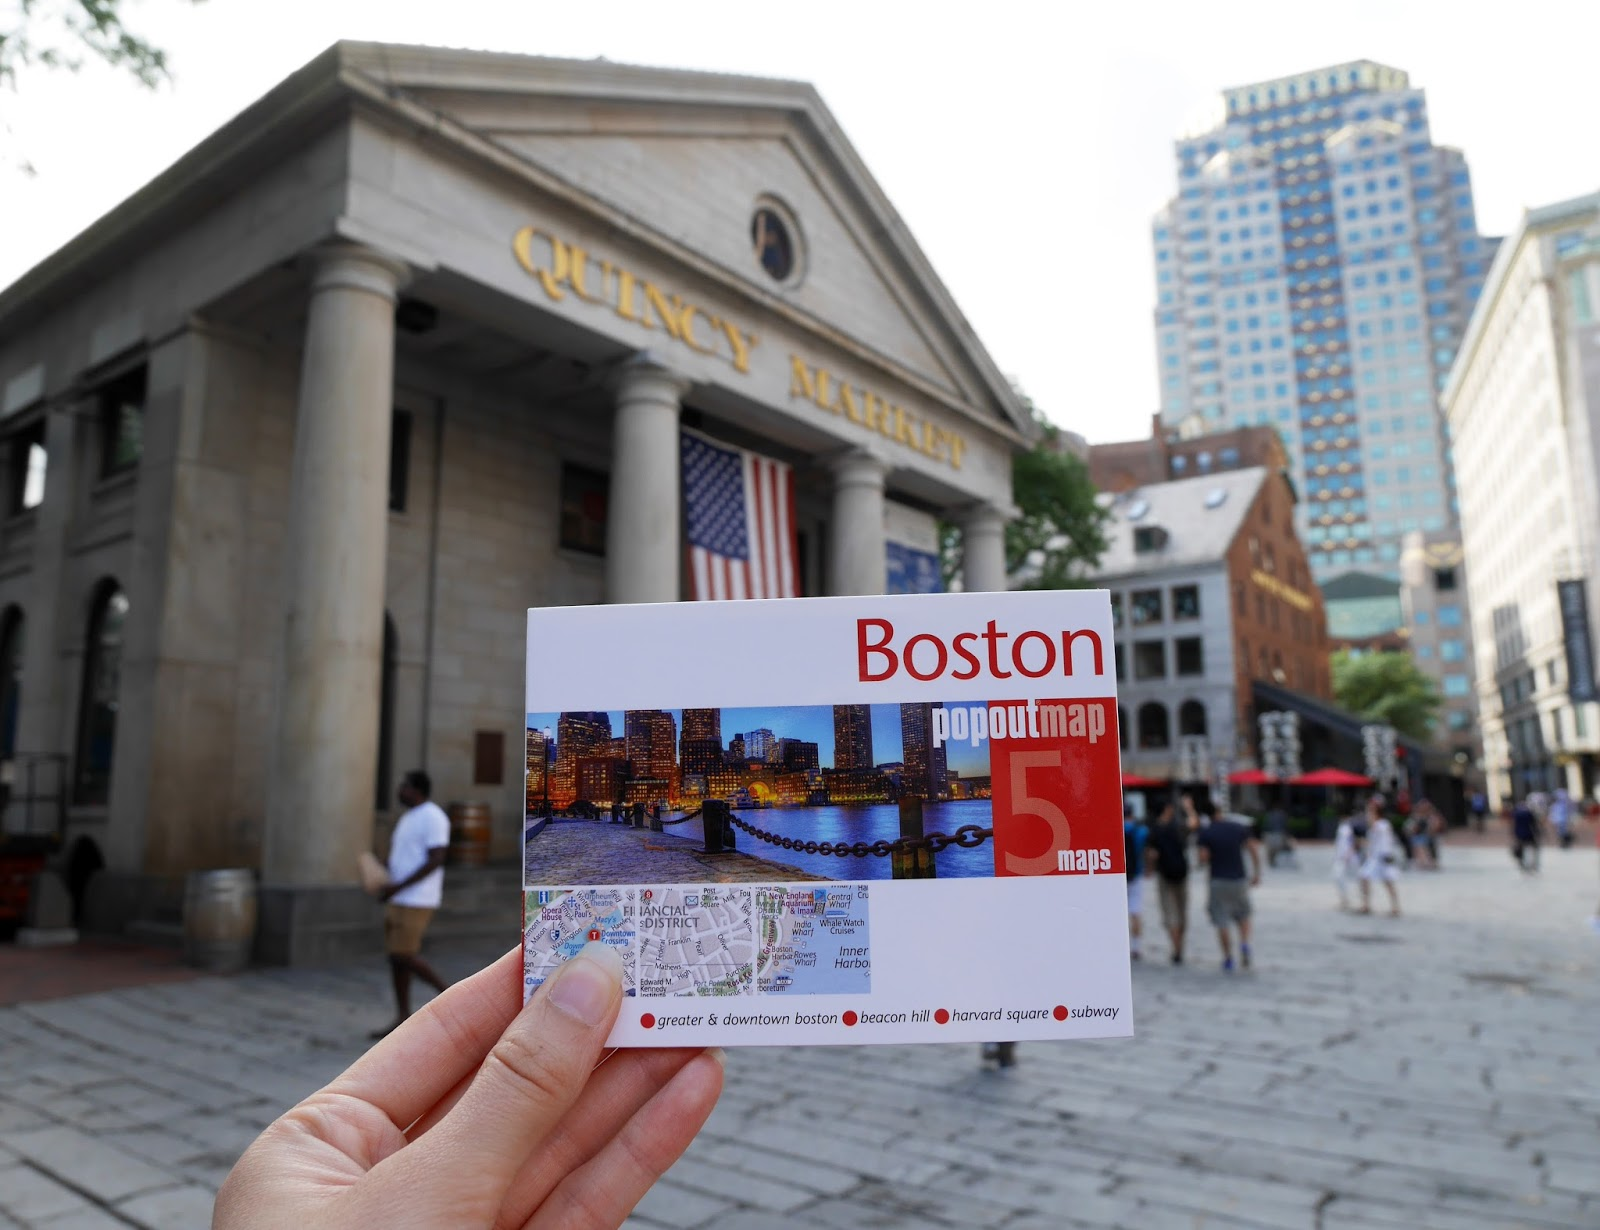 10 places to visit in Boston   Kat Last   A Travel  Craft and     For today s post  I m going to talk about places that you should visit in  Boston